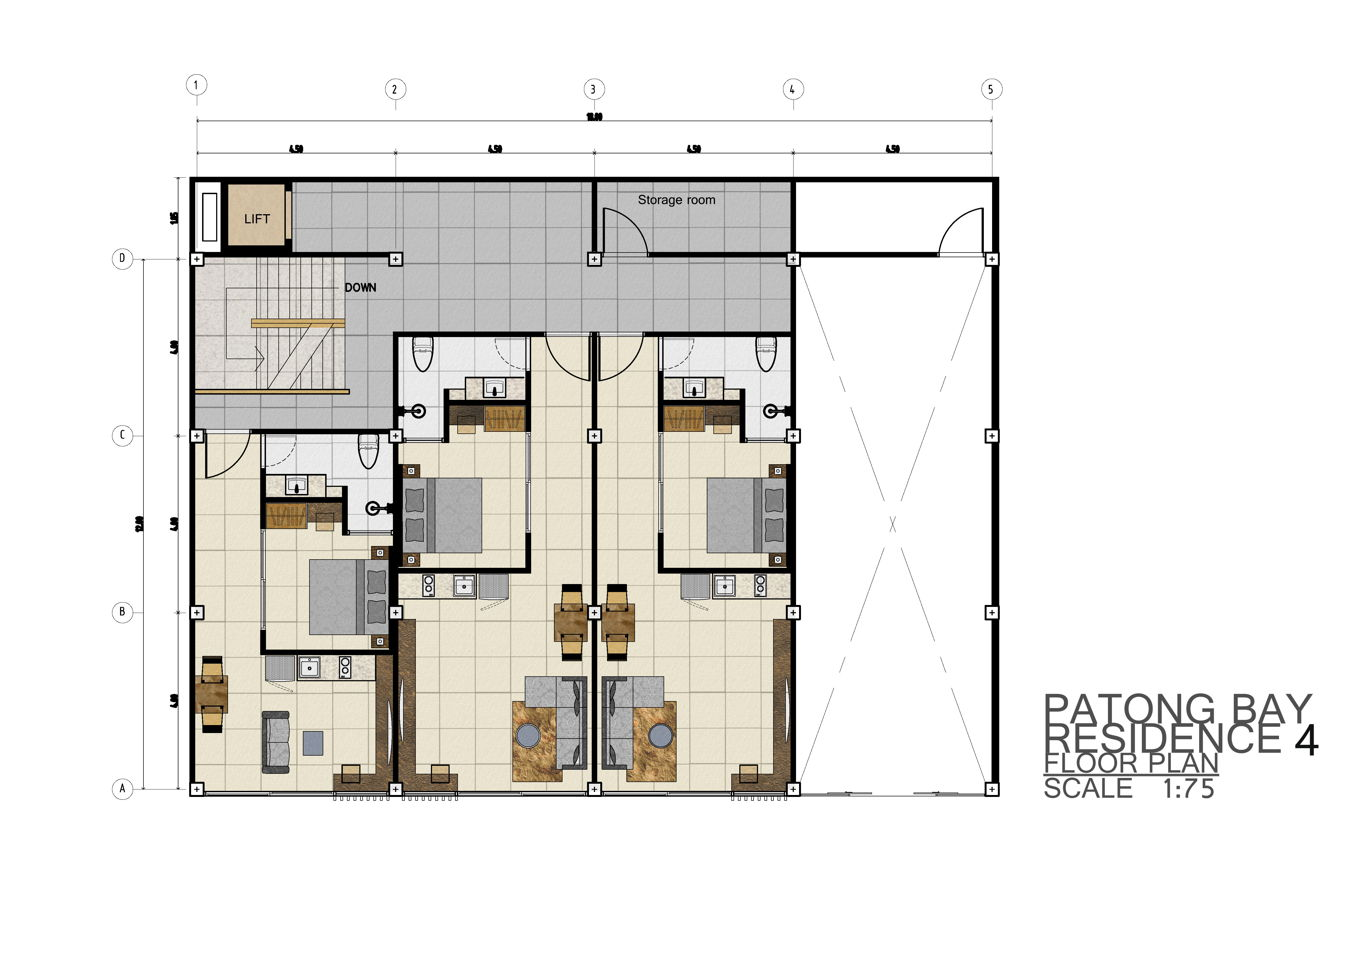 Phuket Holiday Services Patong Bay Residence Phase 4 Floor Plan